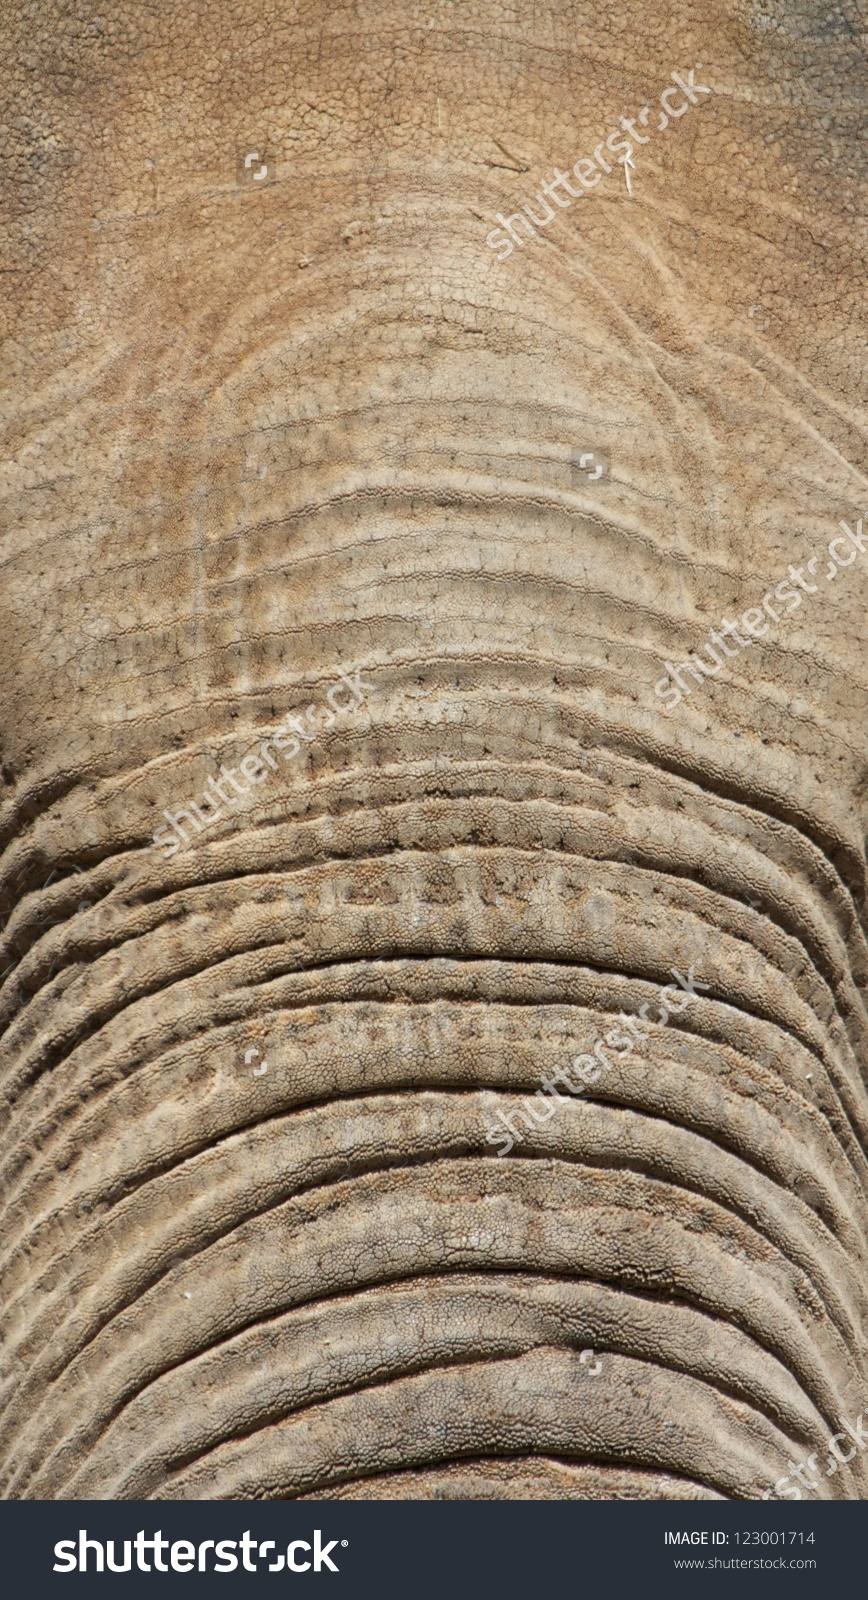 Closeup Shot Of An Asian Elephant'S Forehead With Its Thick.